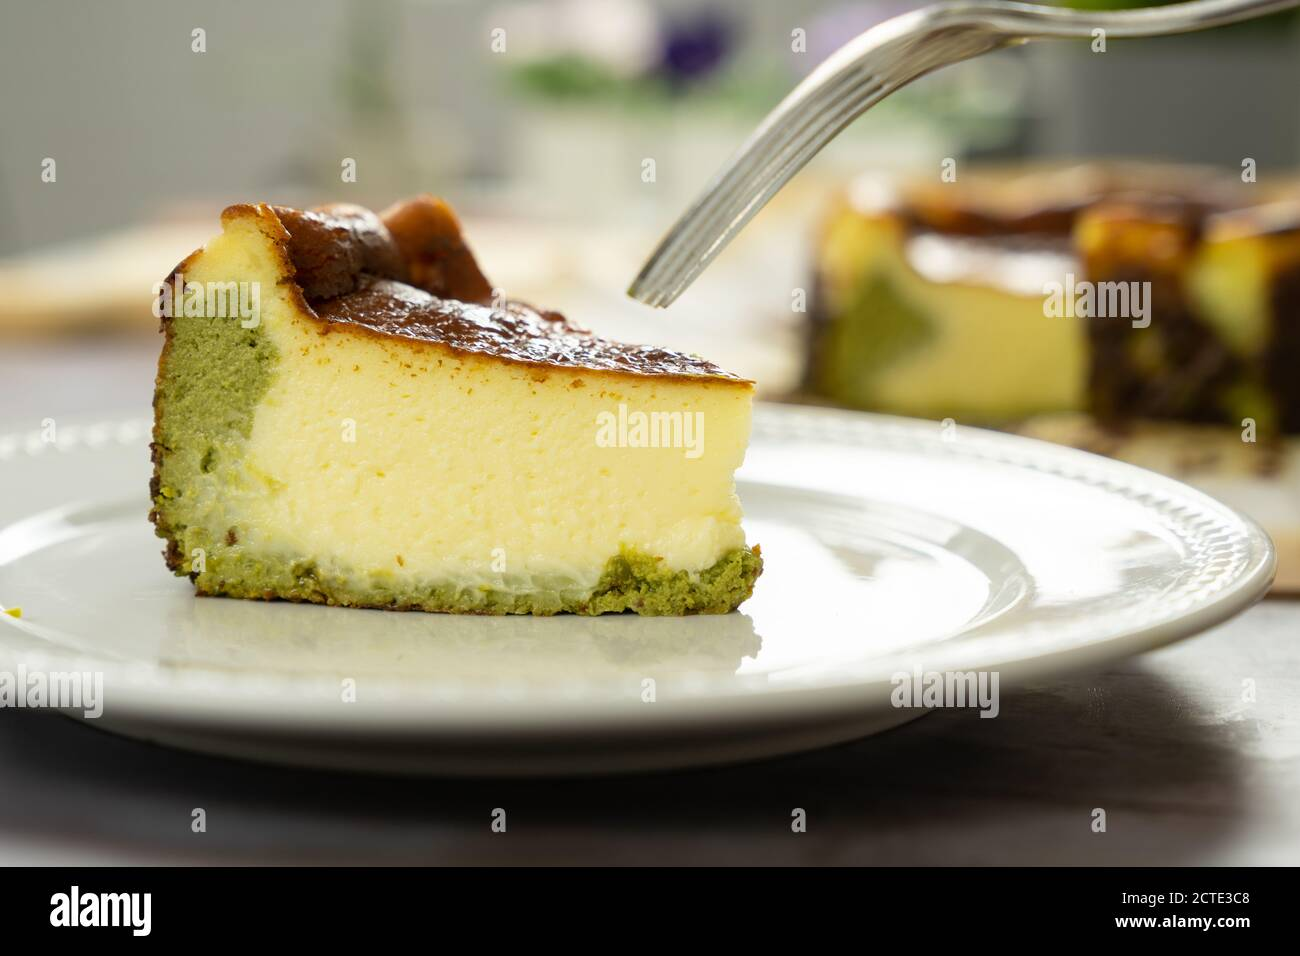 Matcha Basque Burnt Cheesecake Stock Photo Alamy